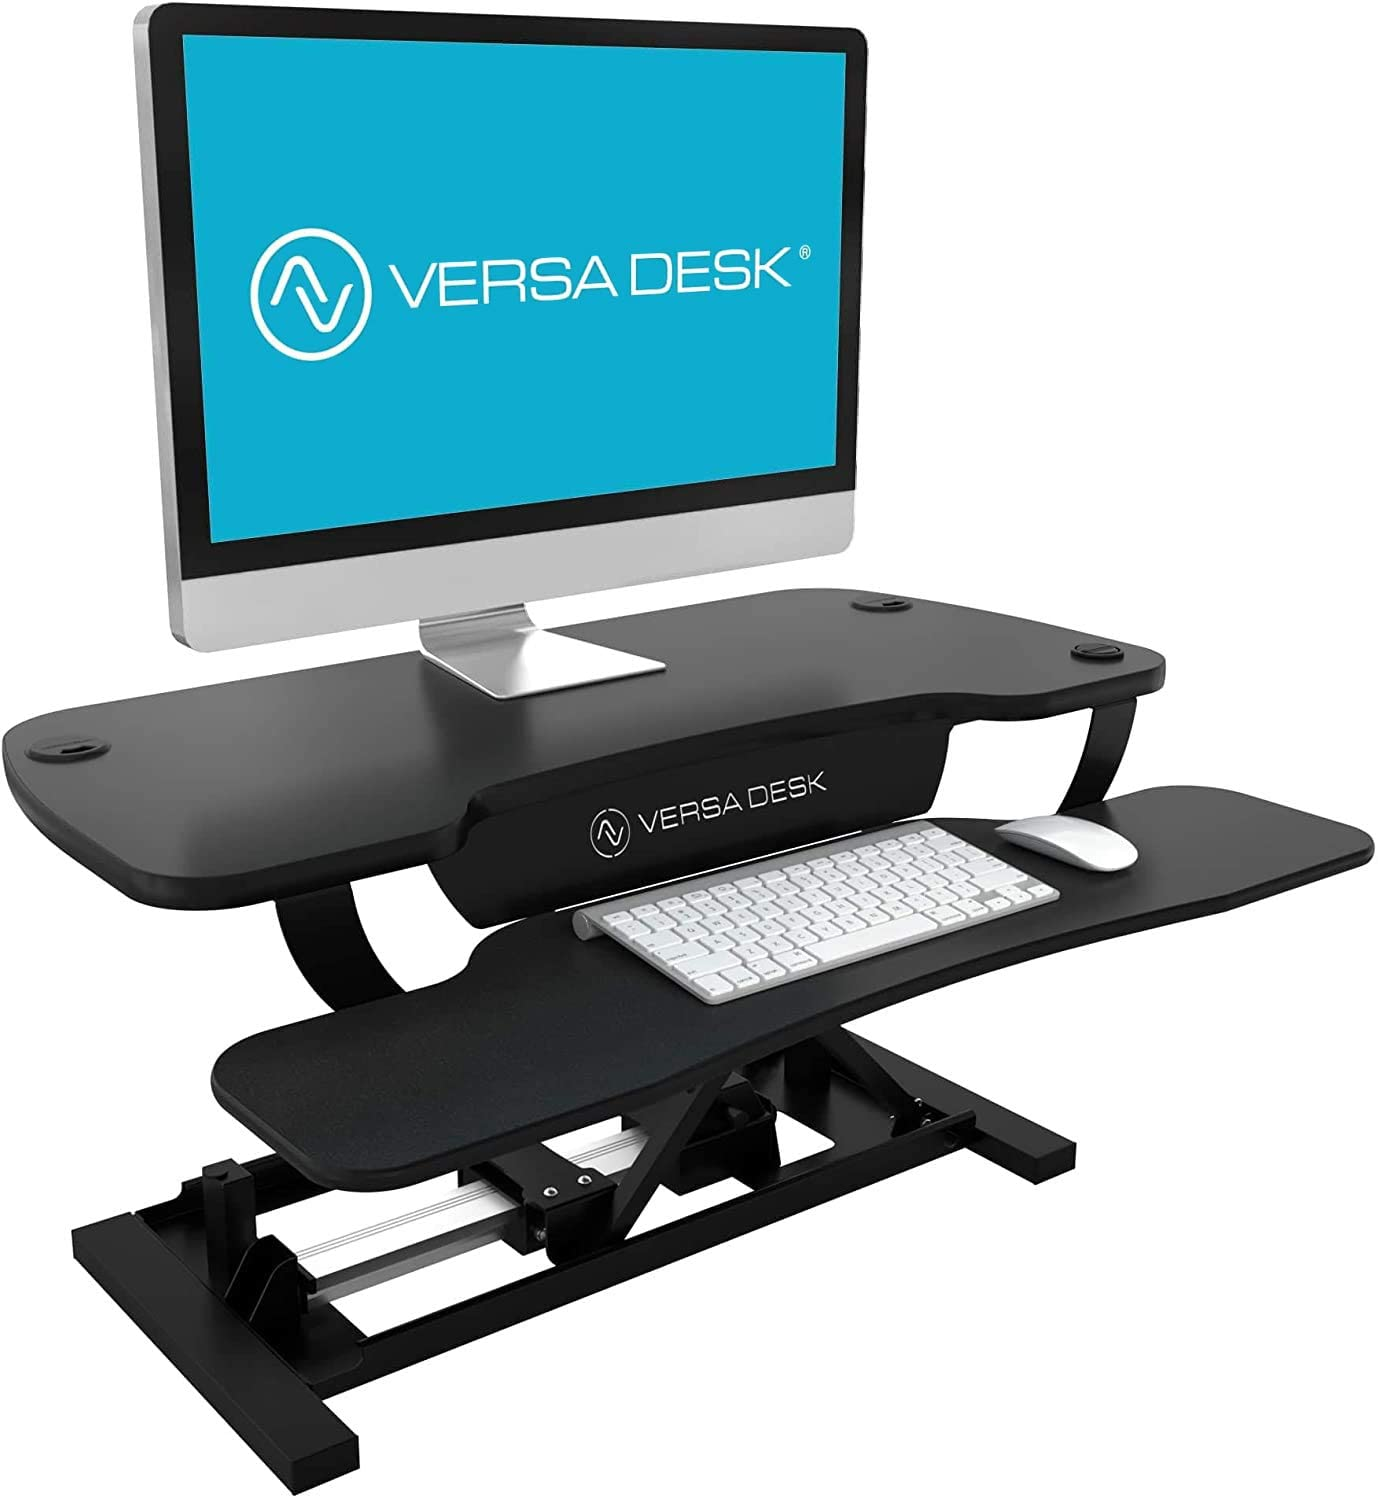 VersaDesk USA Made | Power Pro Touch Button Electric Height-Adjustable Desk Riser | Standing Desk Converter | Sit to Stand Desktop with Keyboard + Mouse Tray (All Black, 40